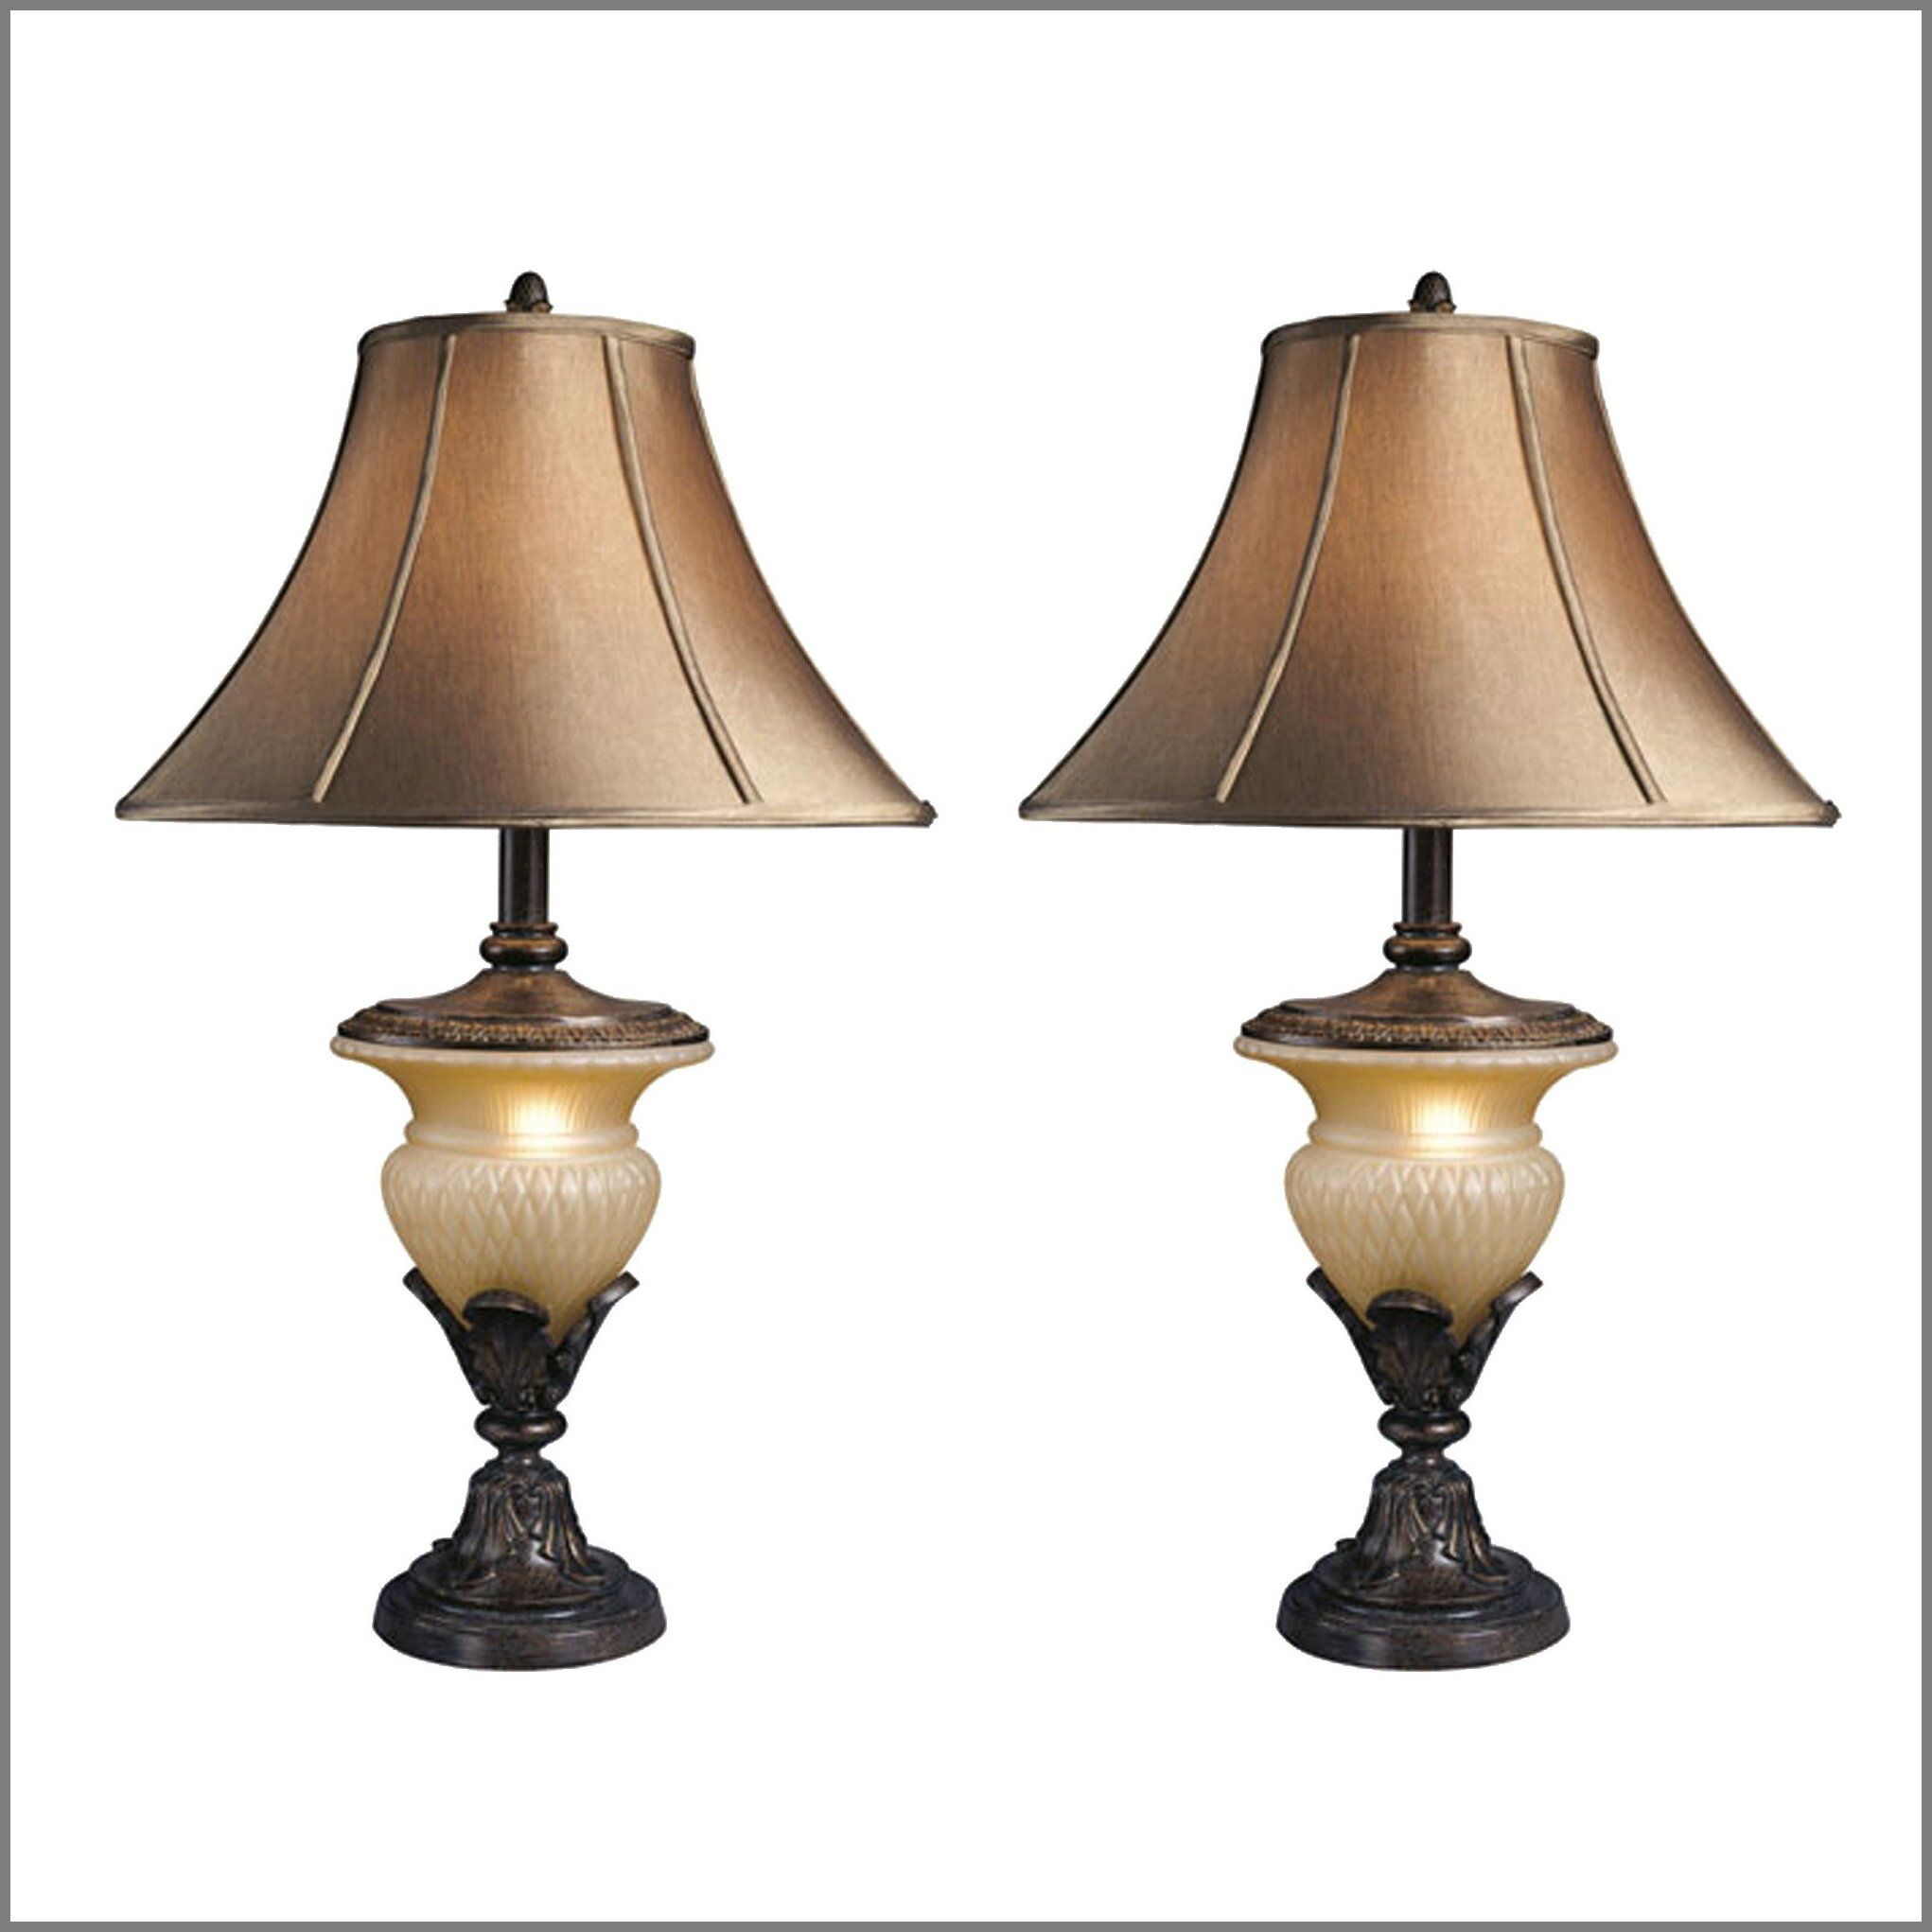 123 Reference Of Wayfair Bedroom Side Table Lamps In 2020 Bedroom Side Table Lamps Side Table Lamps Lamp Sets